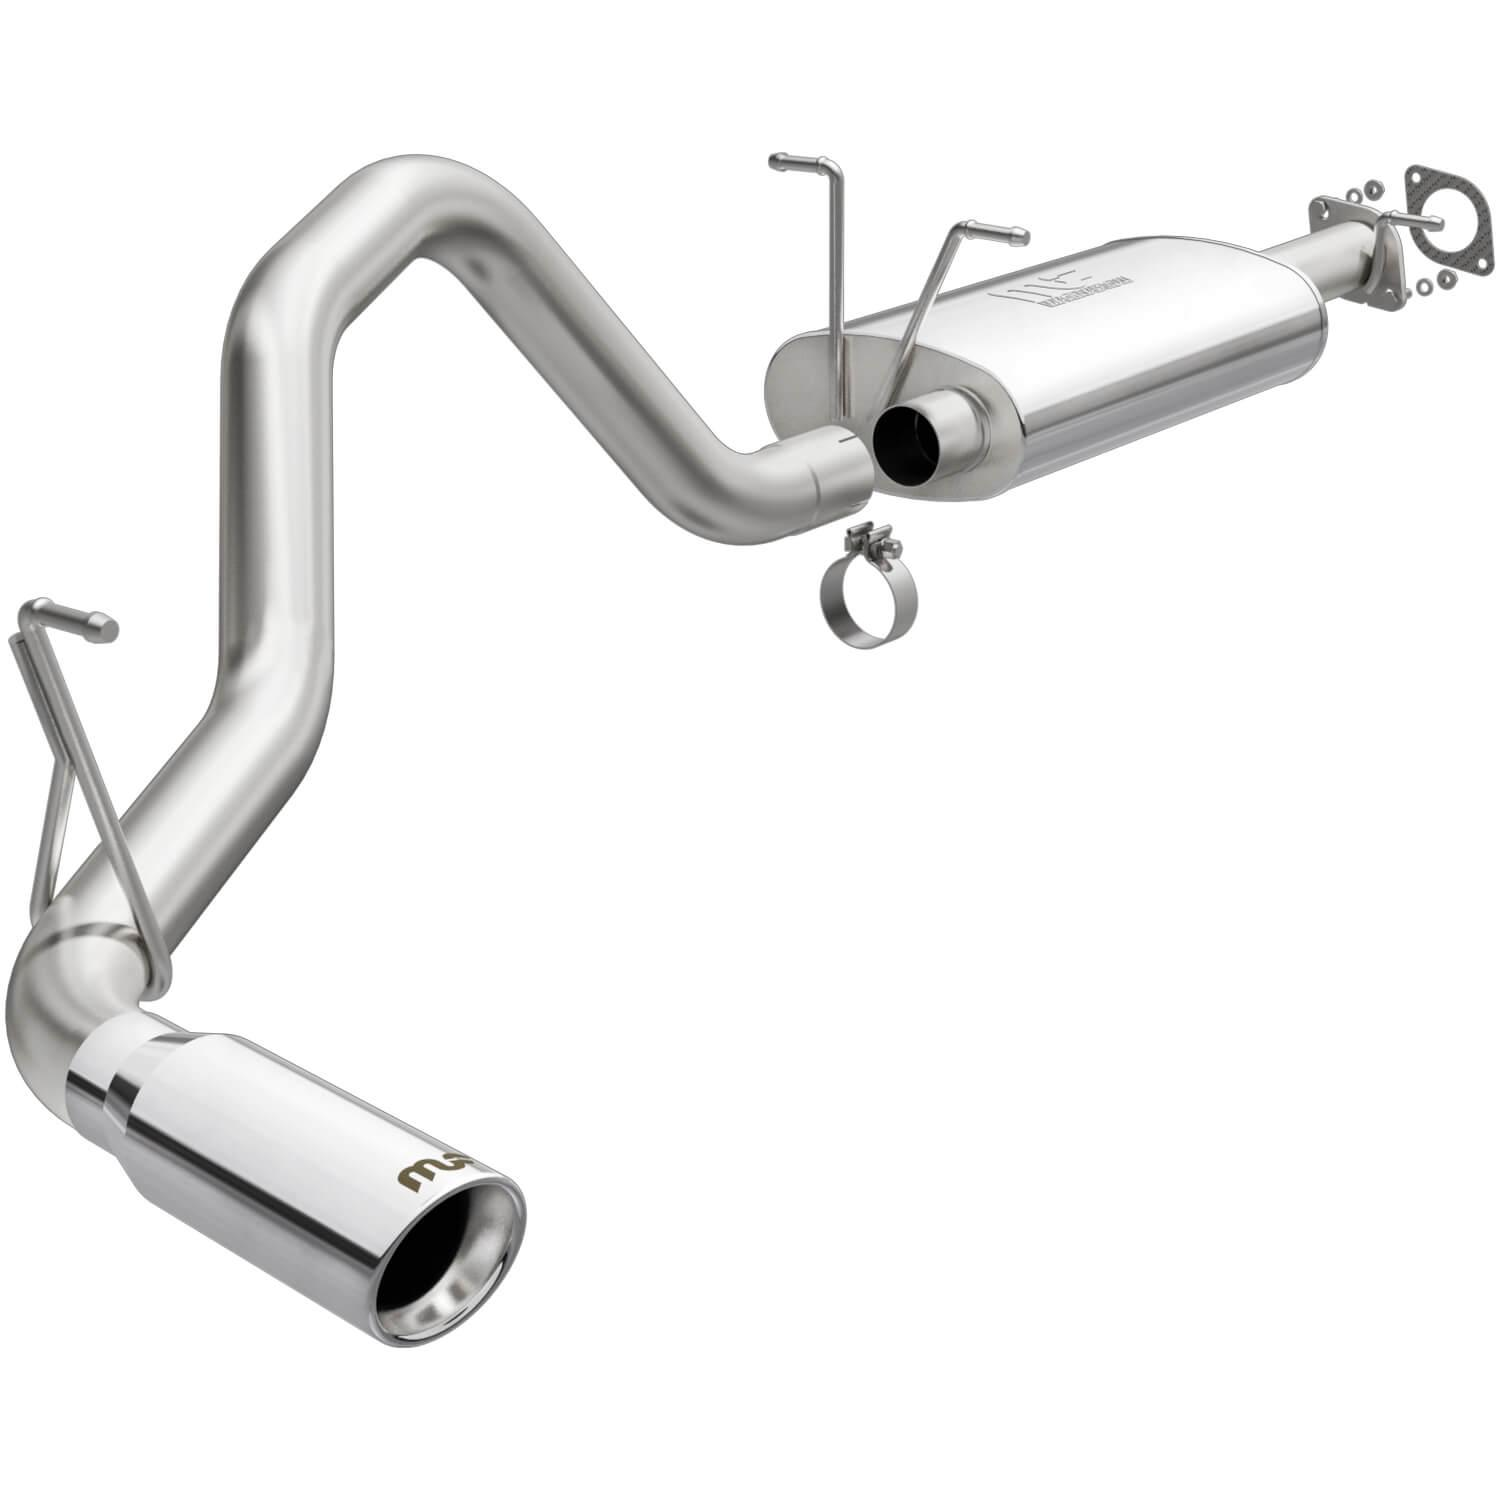 street-series-stainless-cat-back-system